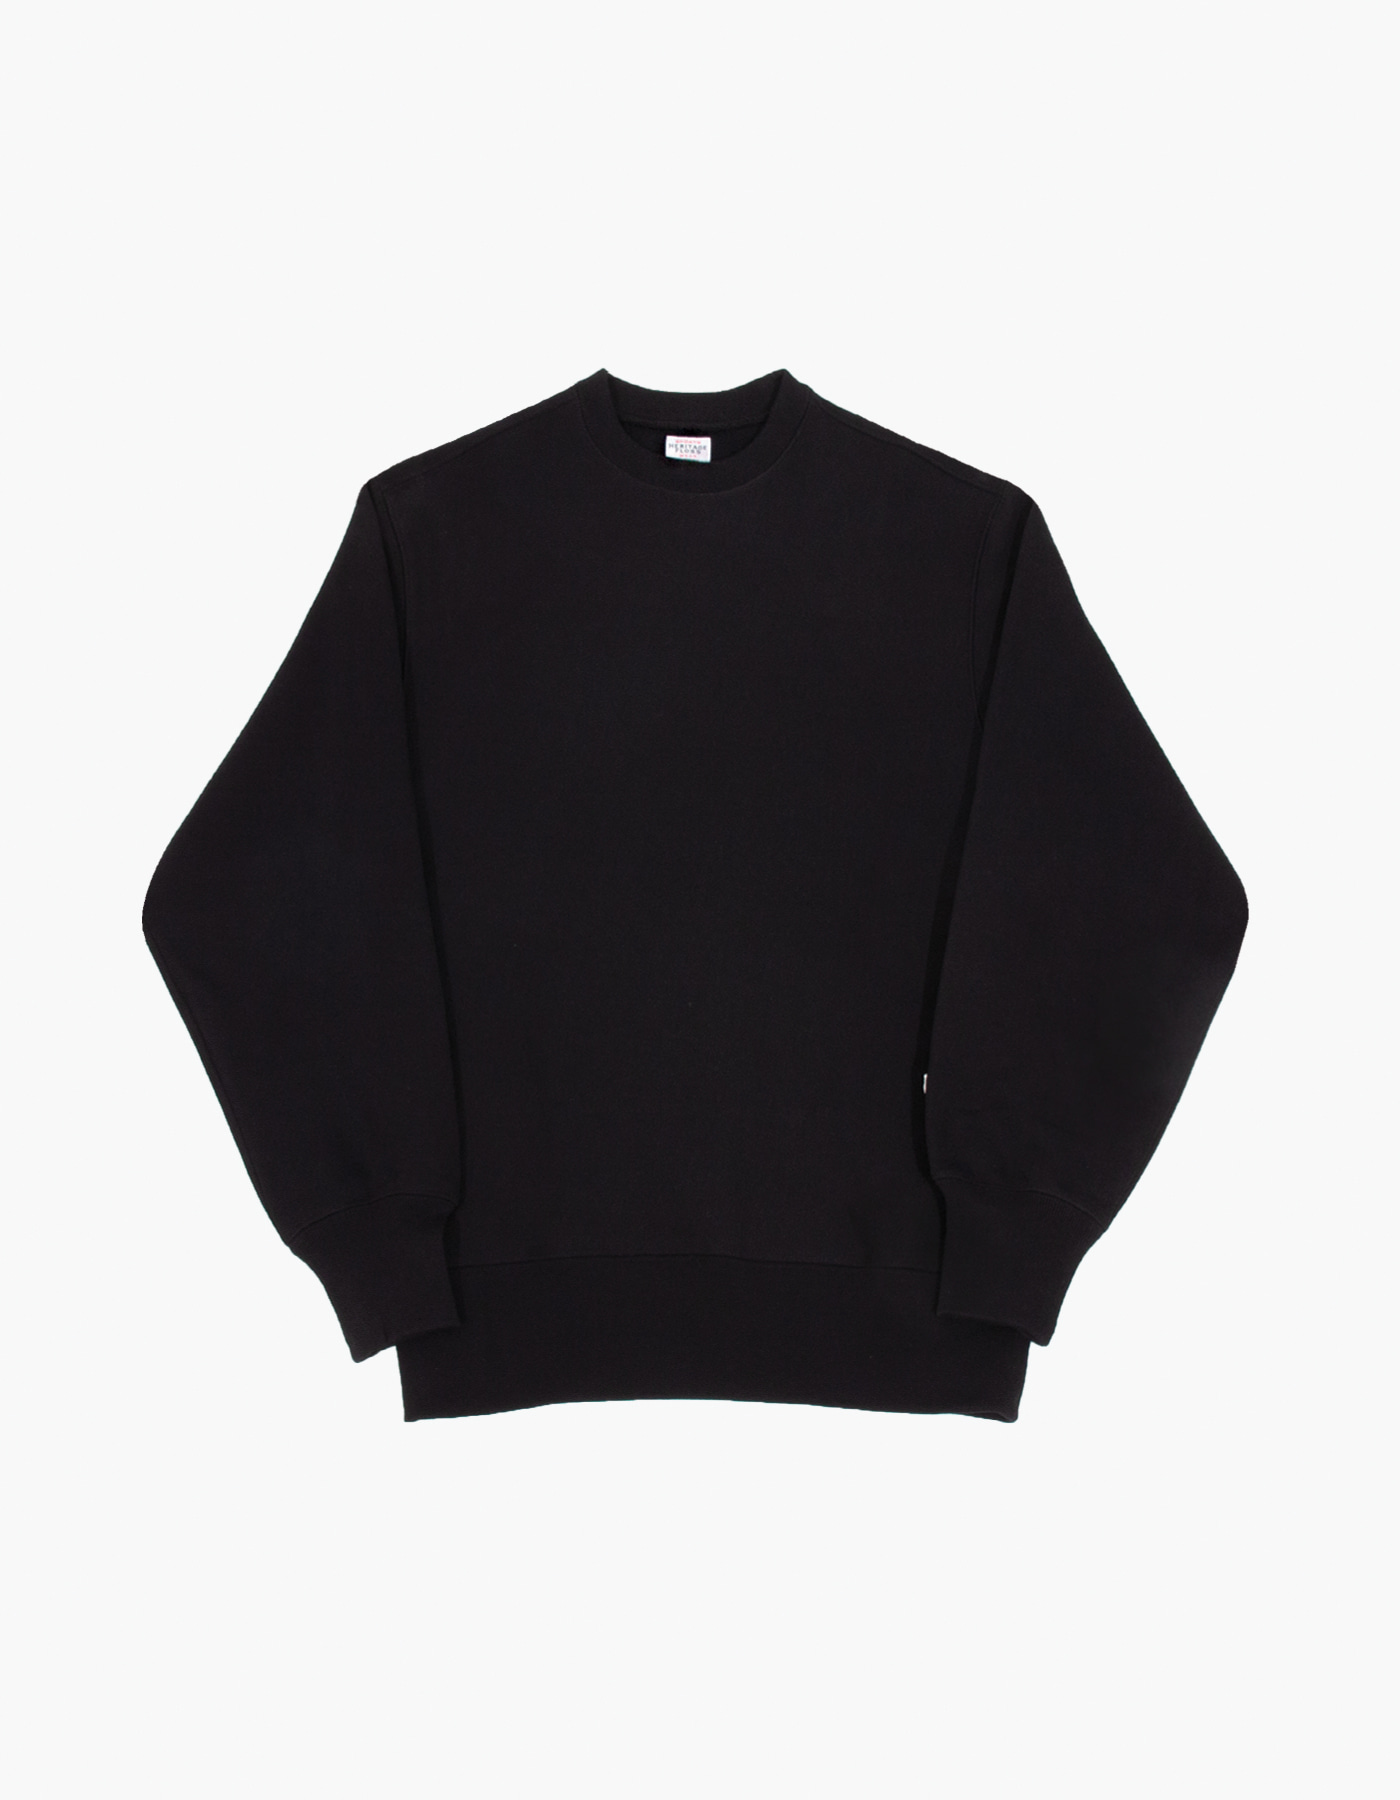 ACS CREWNECK / BLACK